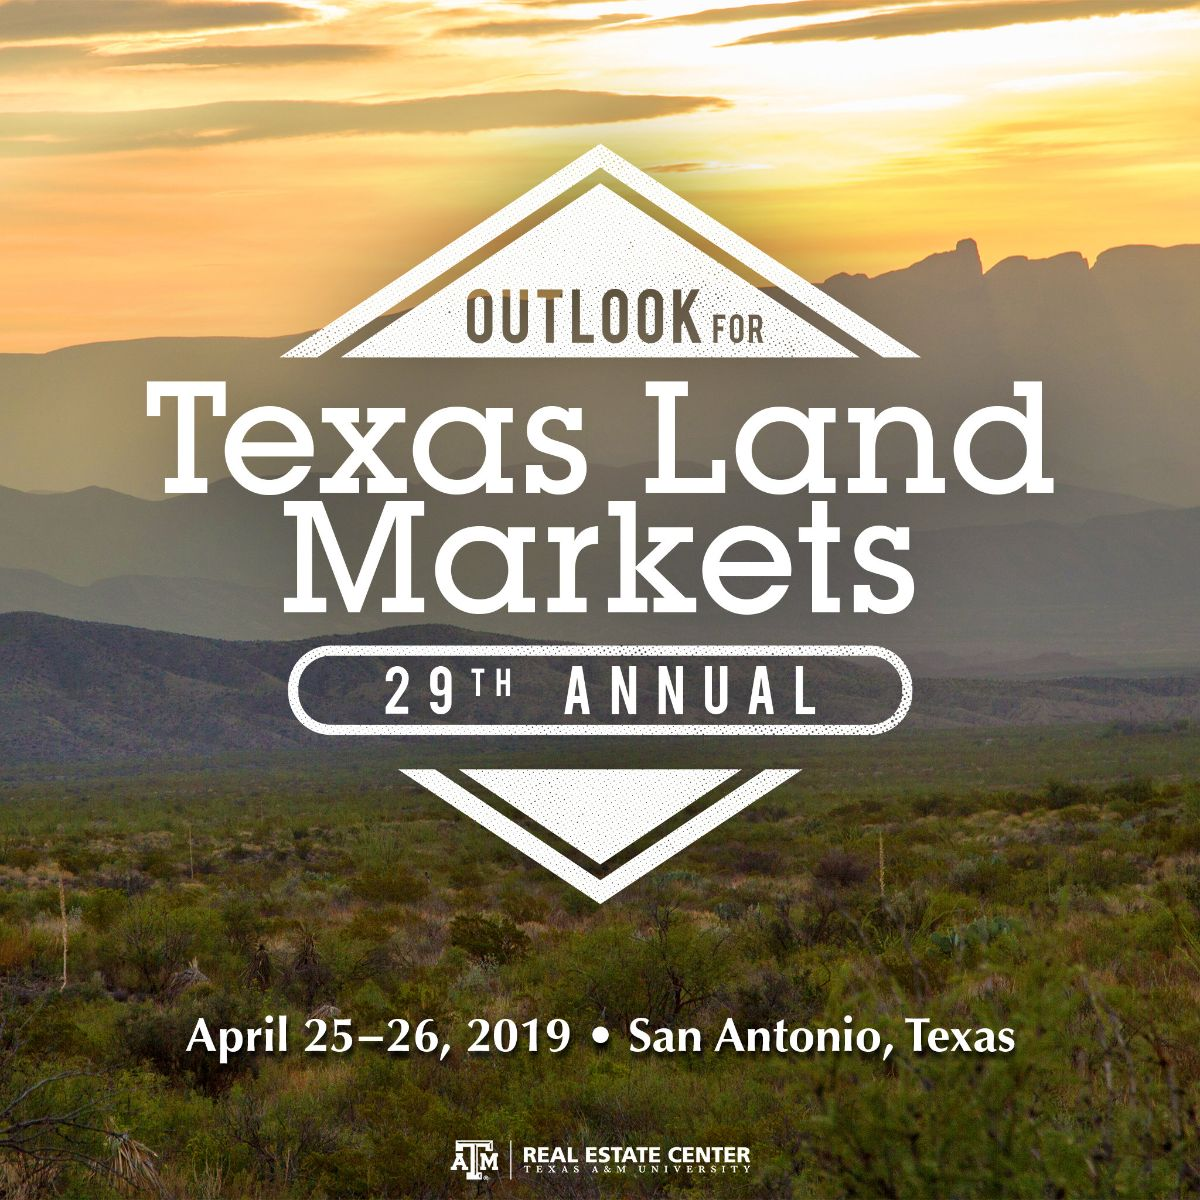 Outlook for Texas Land Markets logo